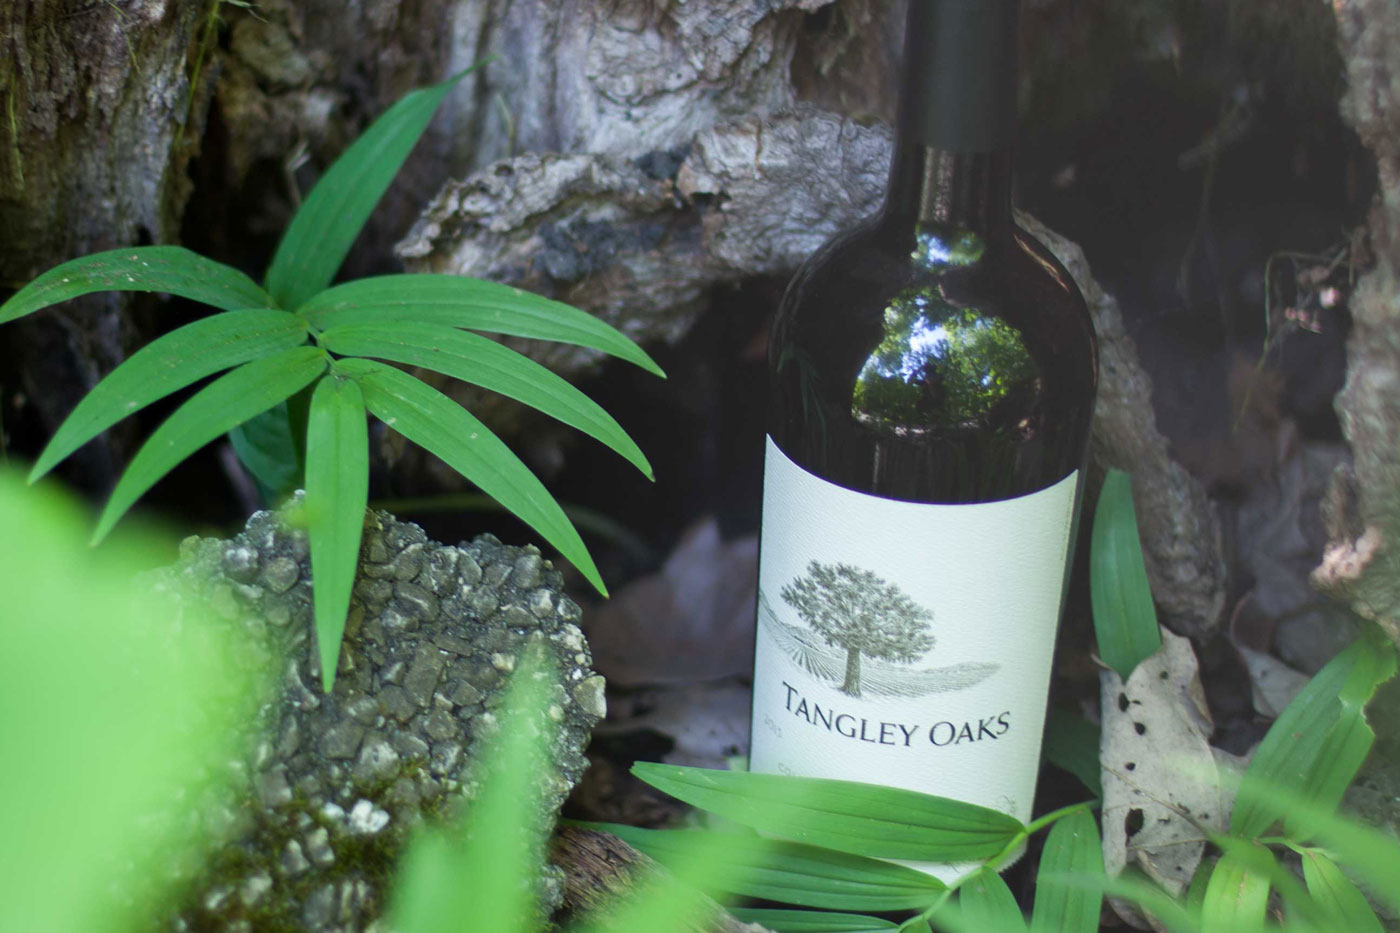 bottle of tangley oaks cabernet in the woods